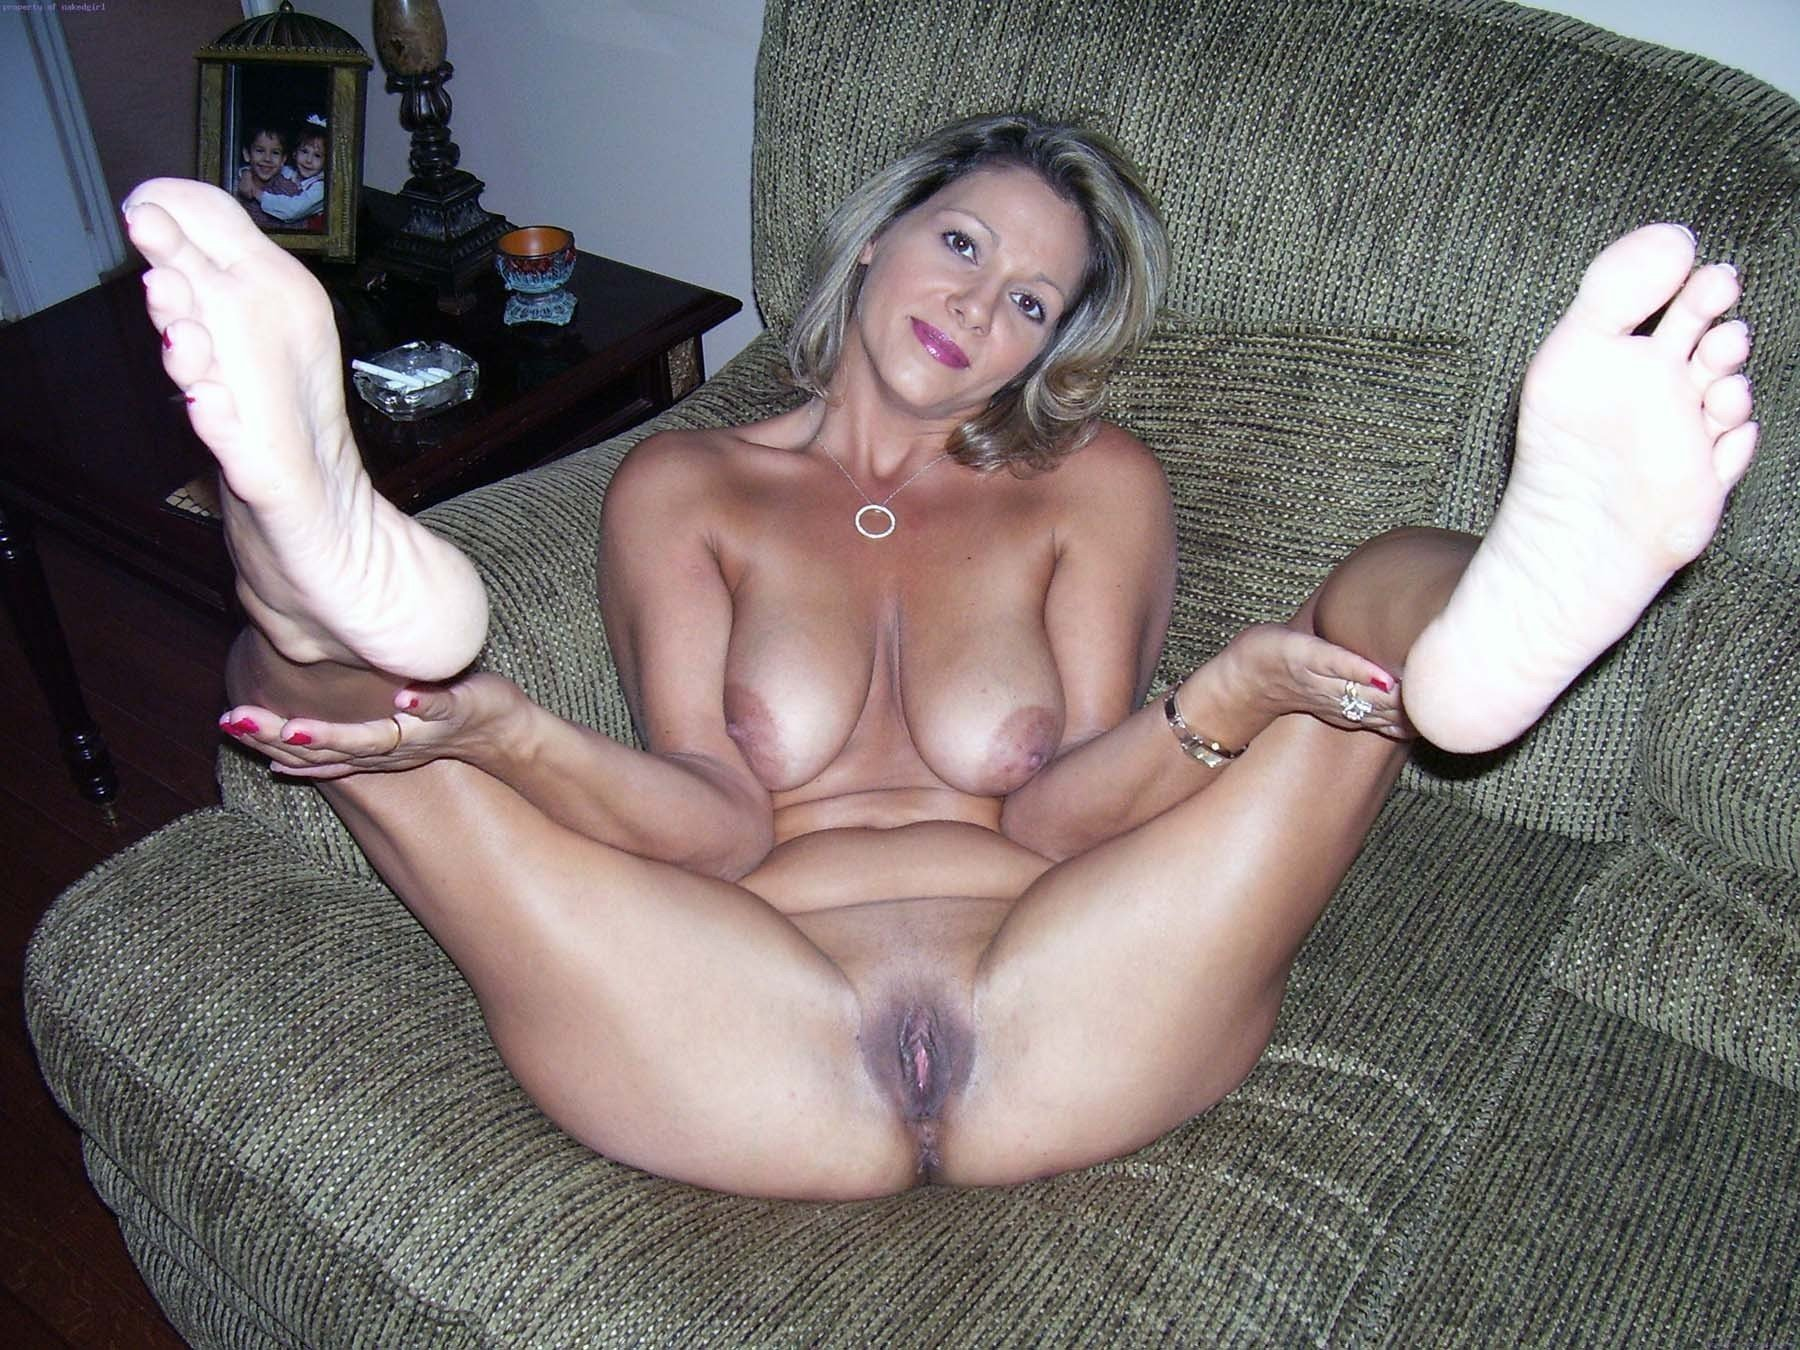 The more i have sex with my wife the more i miss her mom man who's gladly servicing sexy mom